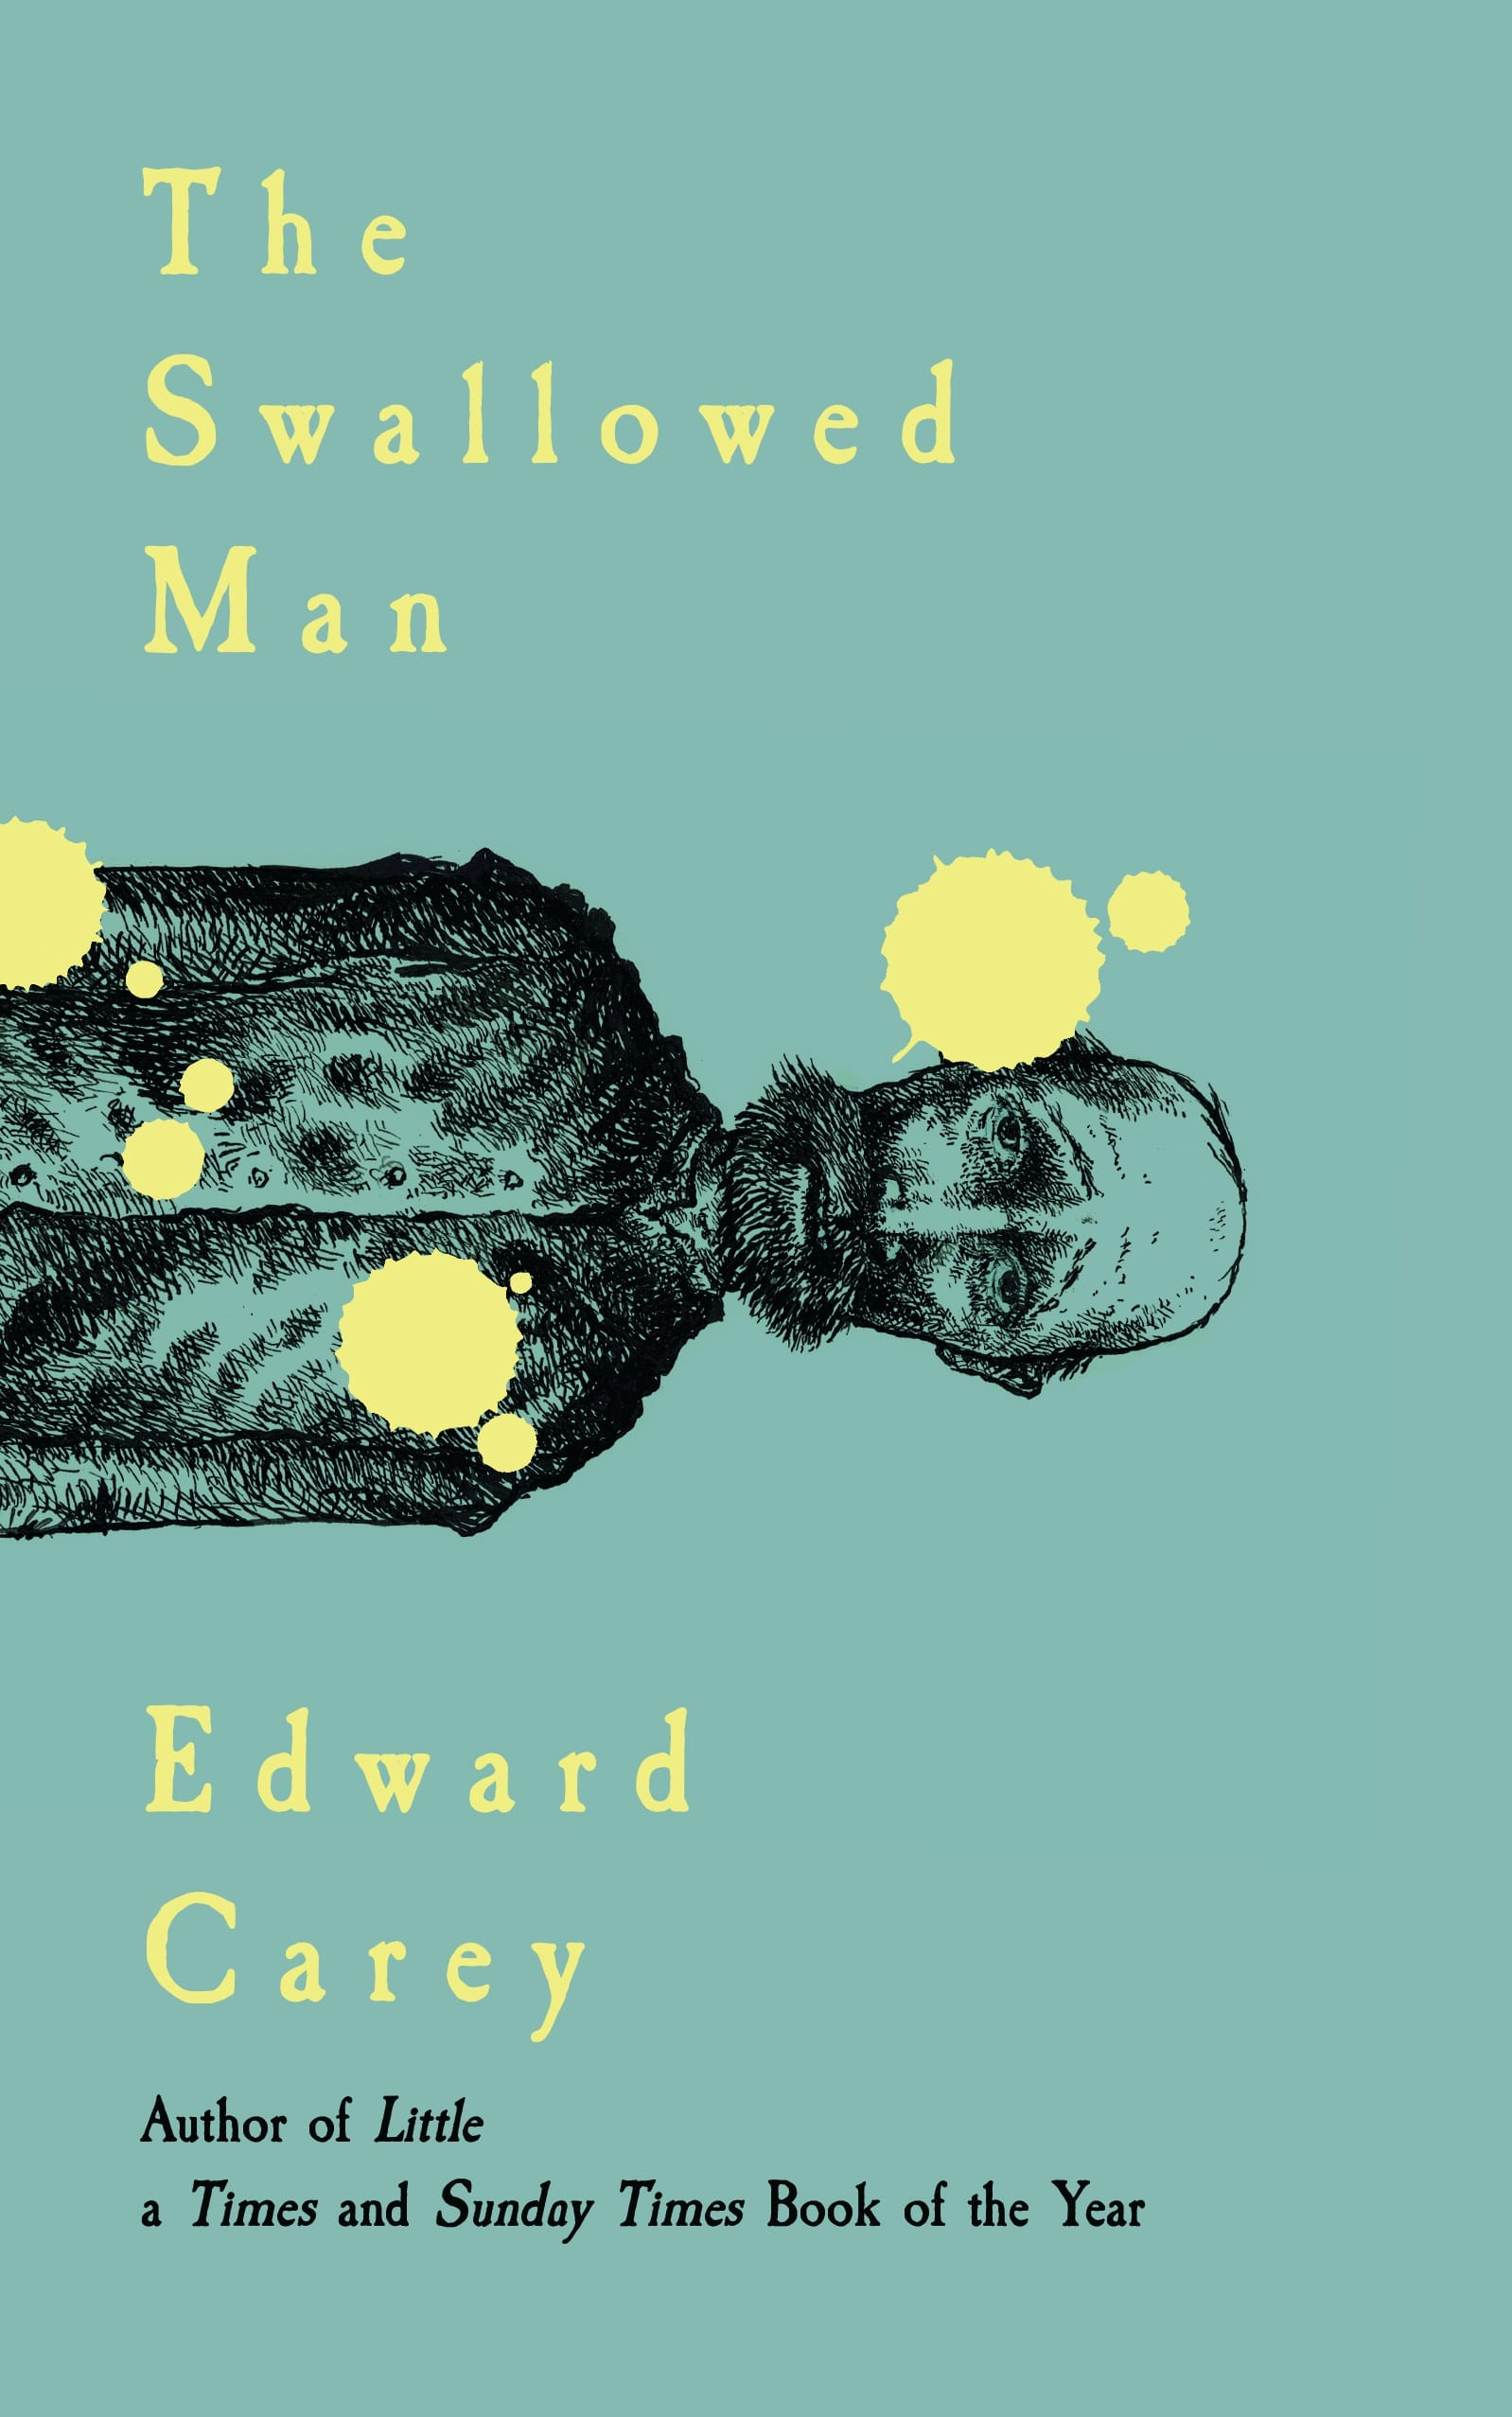 The Swallowed Man by Edward Carey: Geppetto's story